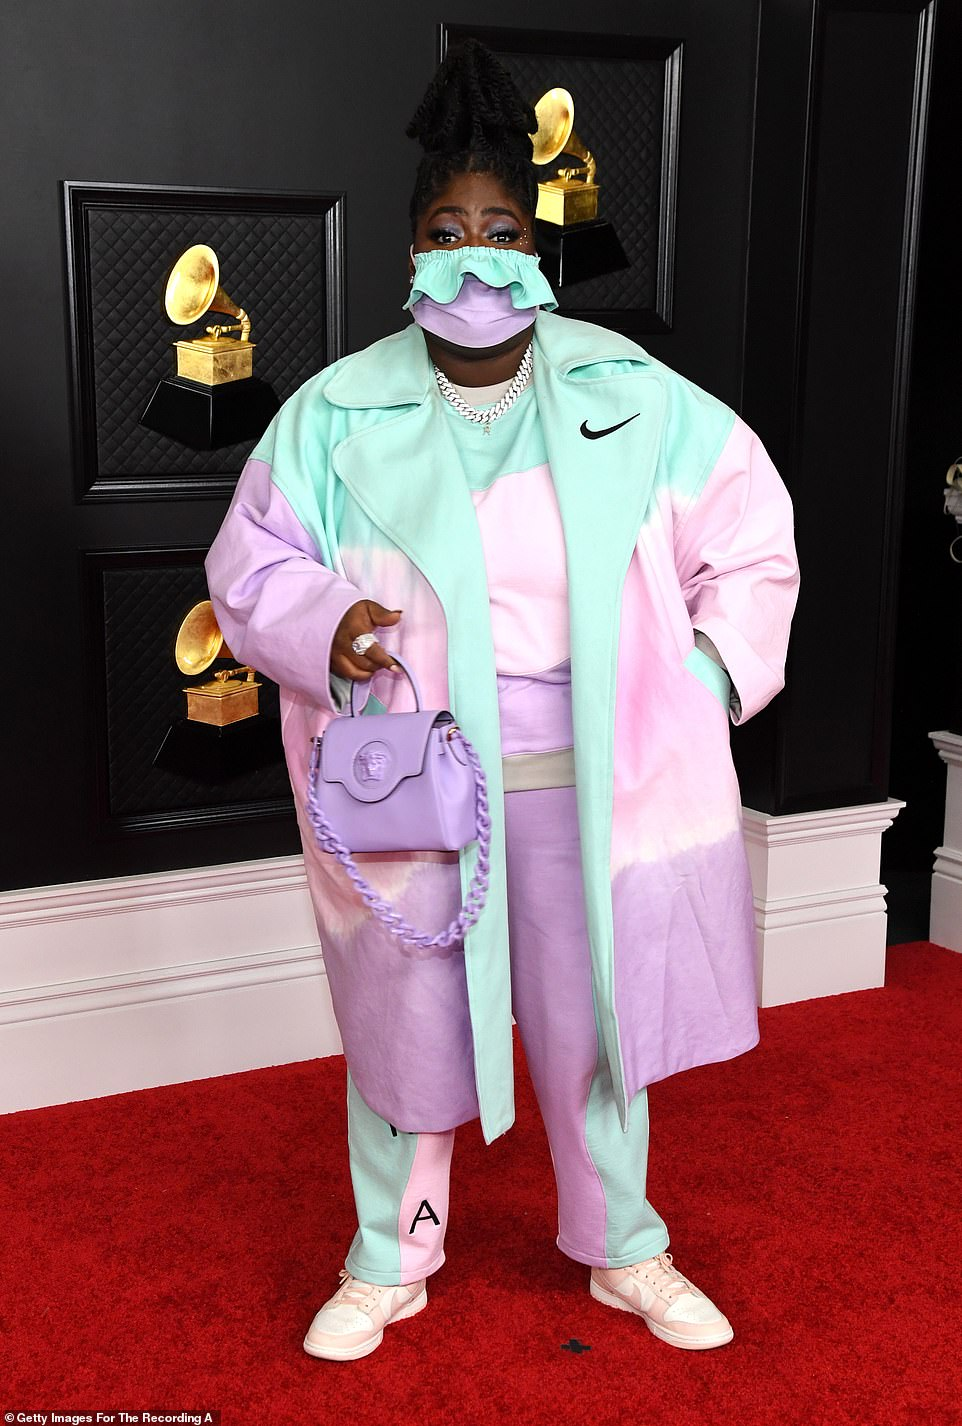 Keeping it colorful: Rapper Chika wore a pastel Nike ensemble with matching handbag